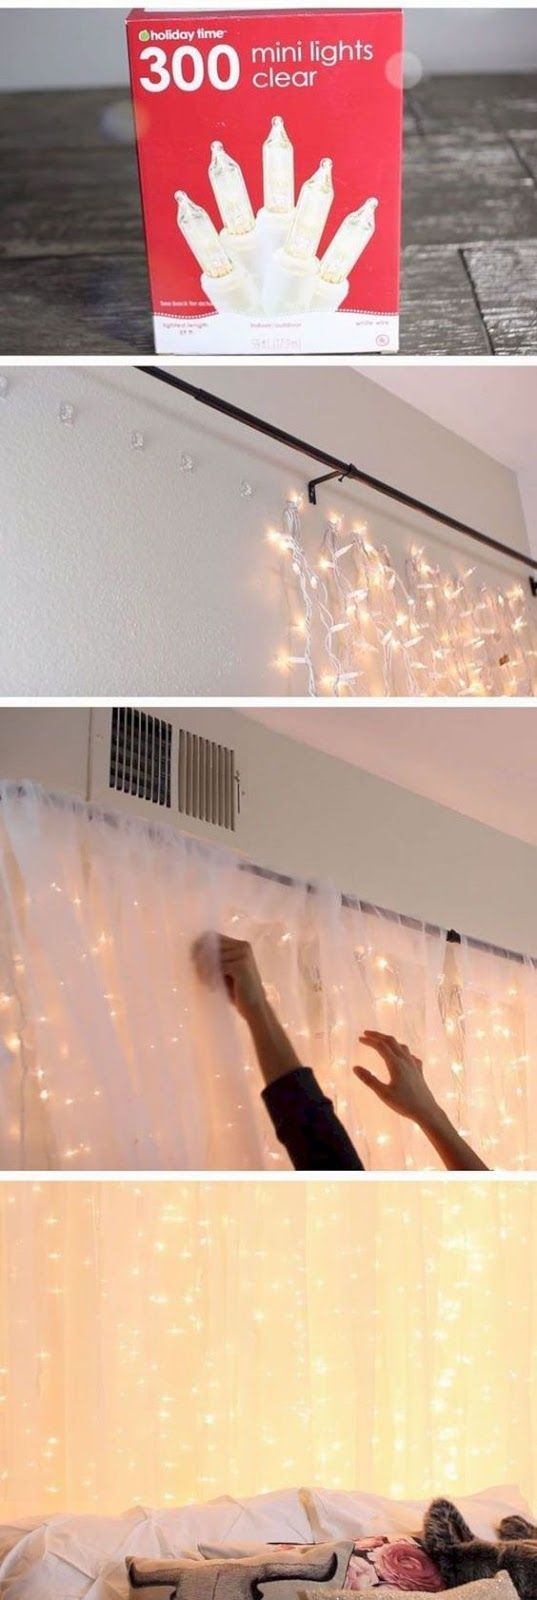 14 DIY Home Decor auf einem Budget Apartment Ideen